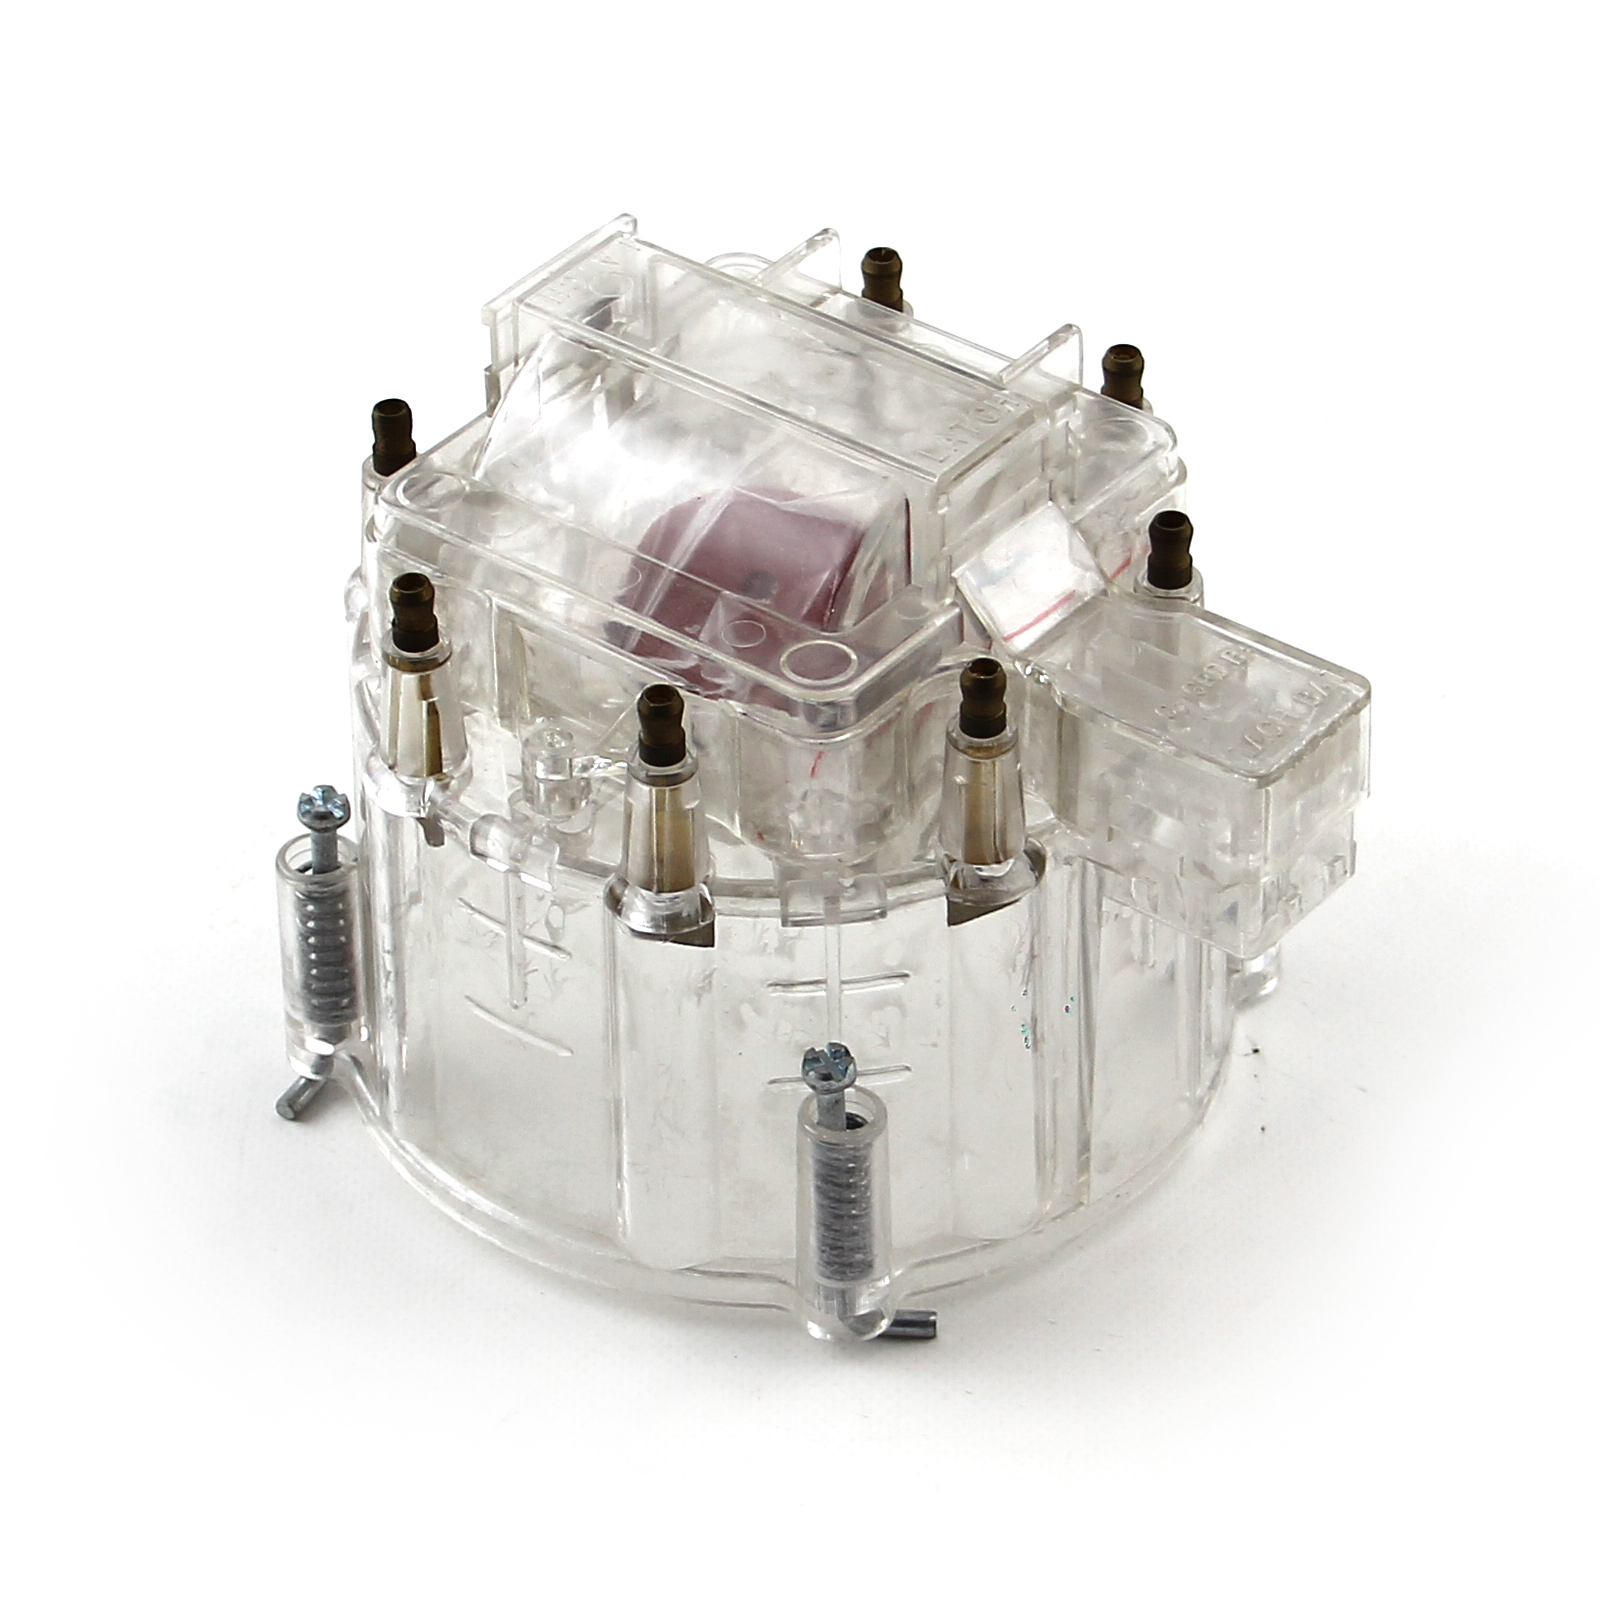 HEI Distributor Cap and Coil Cover - Clear